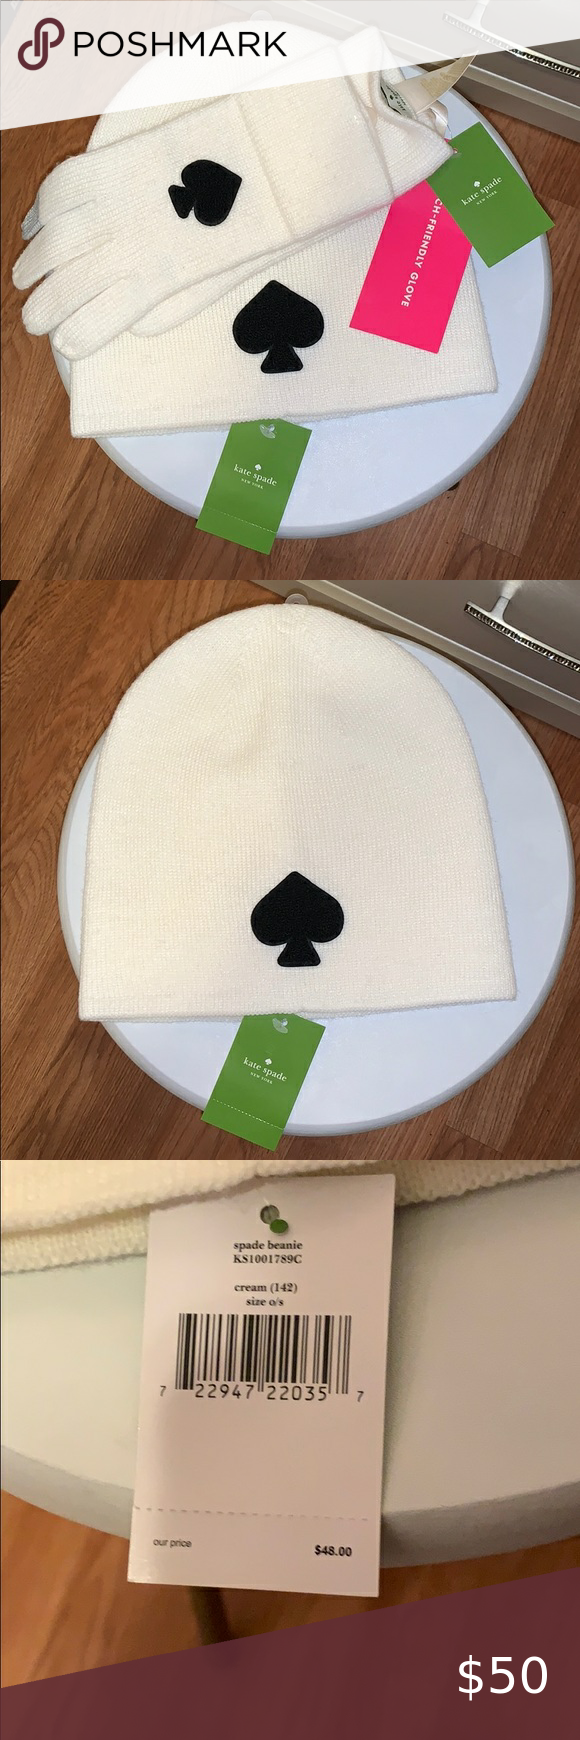 Kate Spade Cloves And Hat Brand New Kate Spades Hat And Gloves Kate Spade Accessories Gloves Mittens In 2020 Kate Spade Kate Spade Accessories Hats